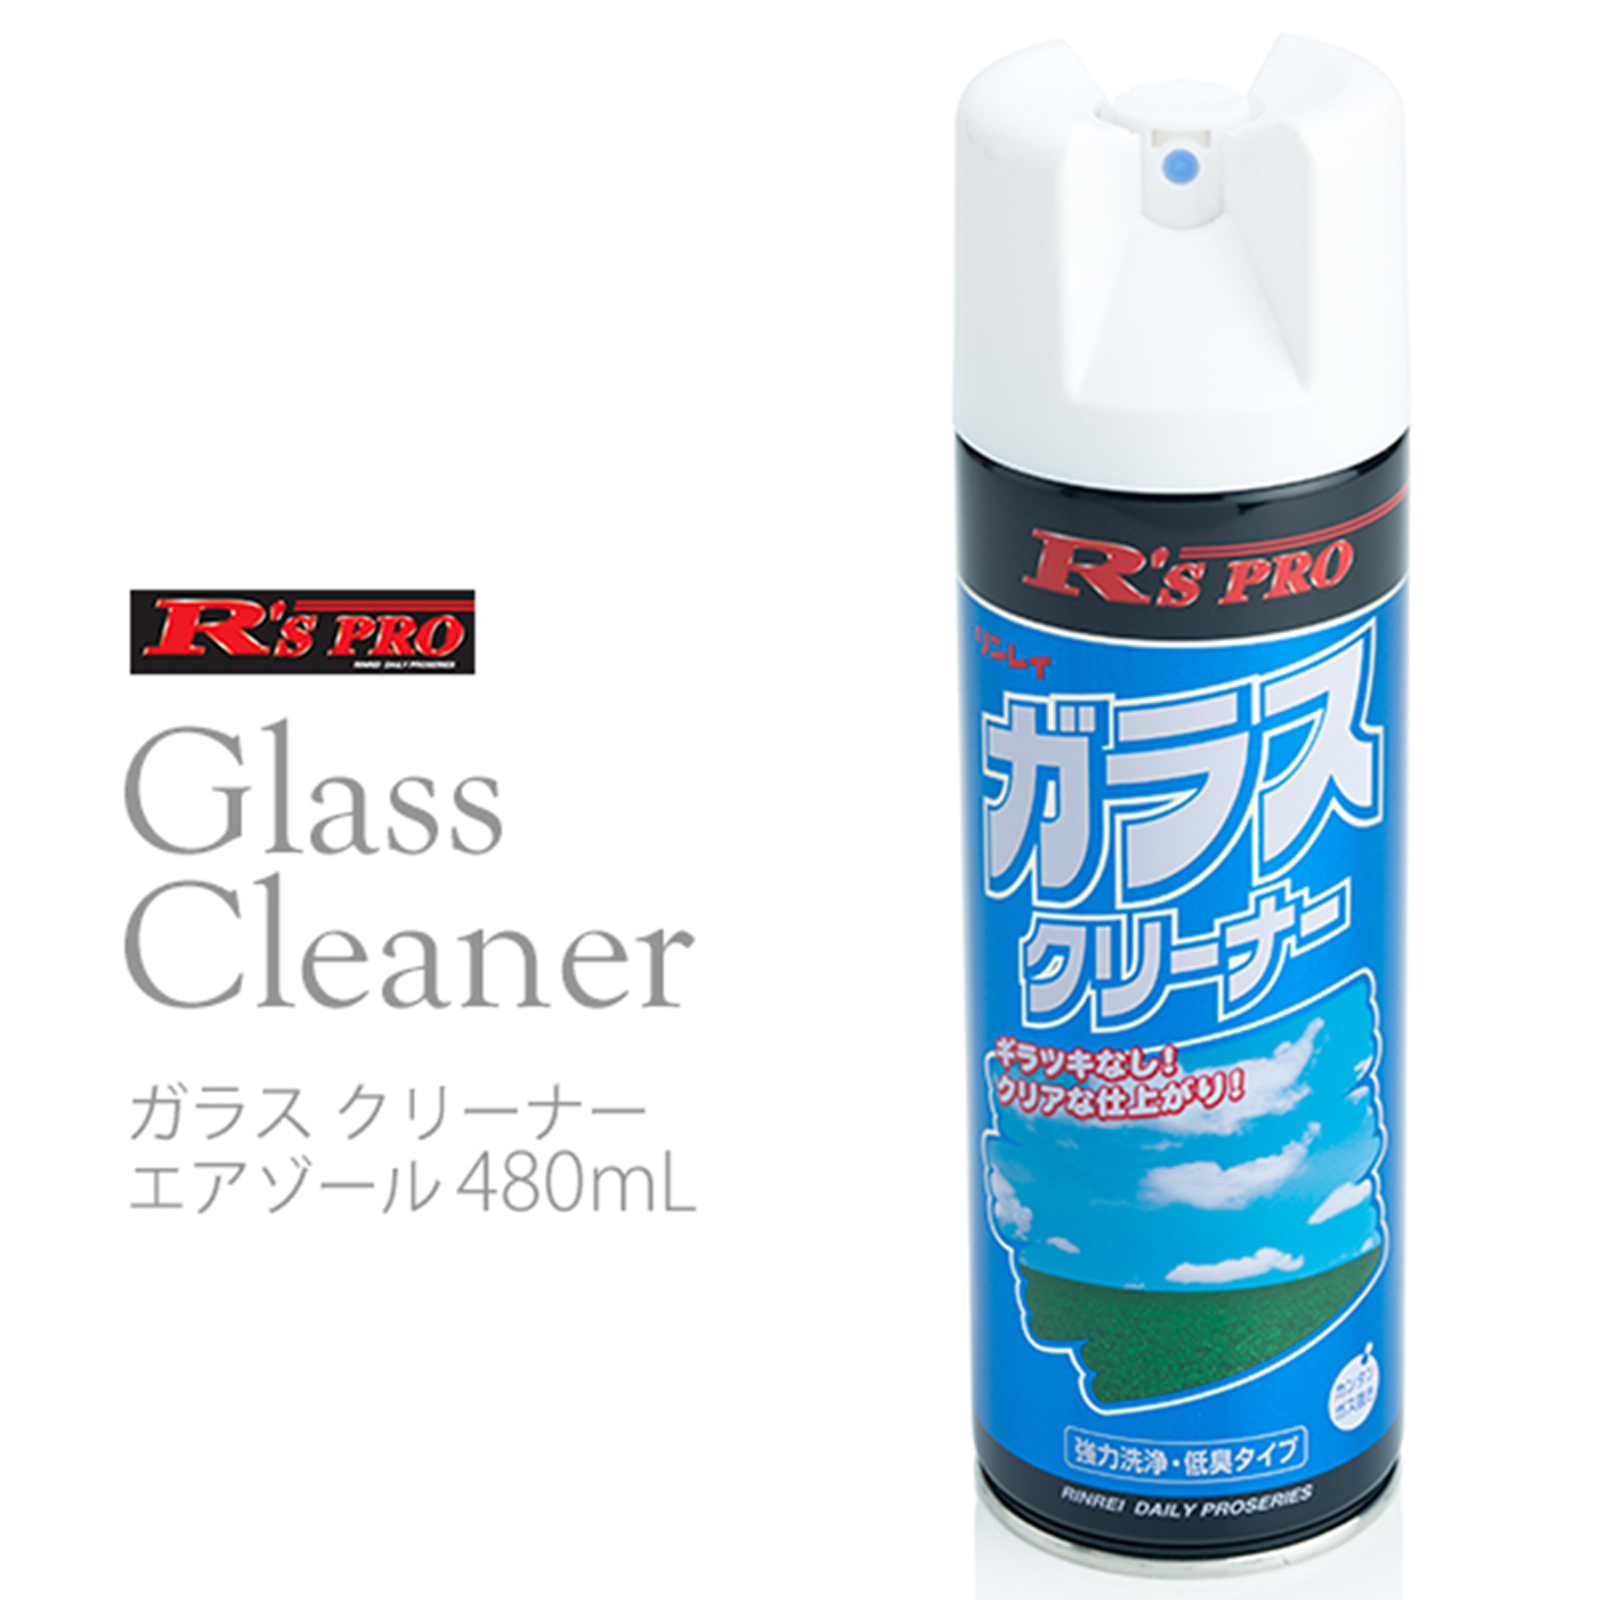 R'S PRO Glass Cleaner